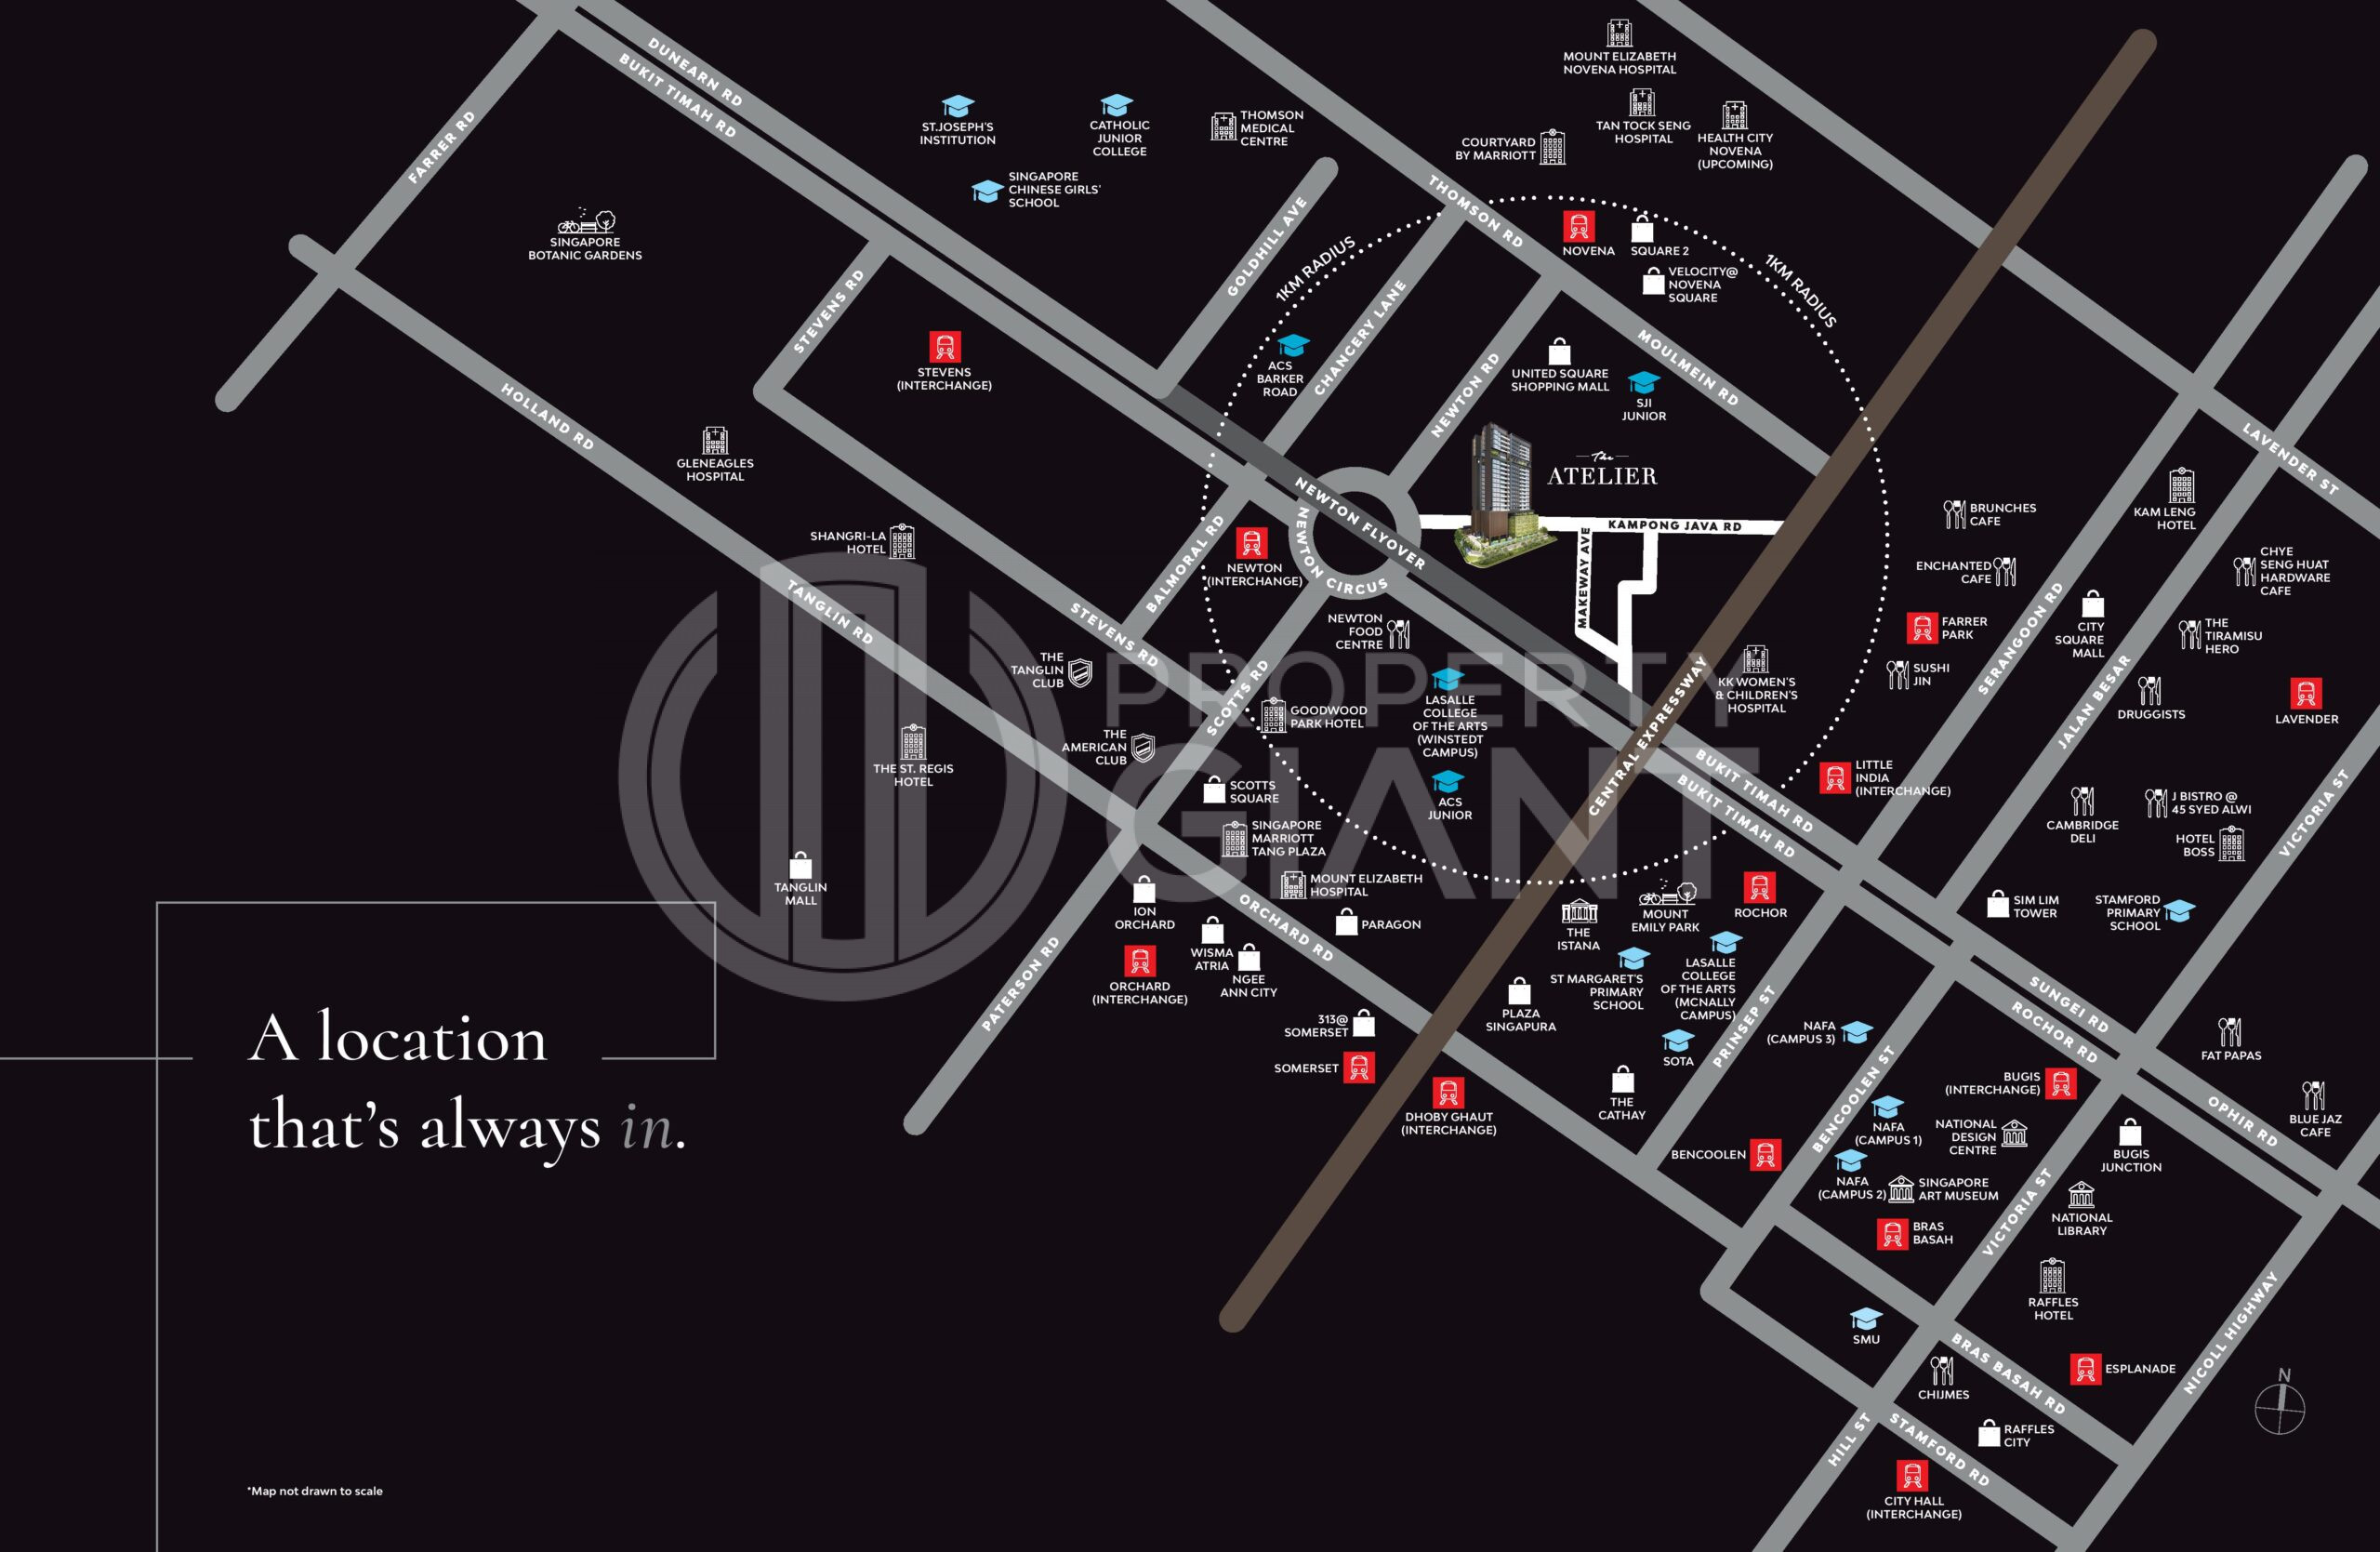 The Atelier Location Map